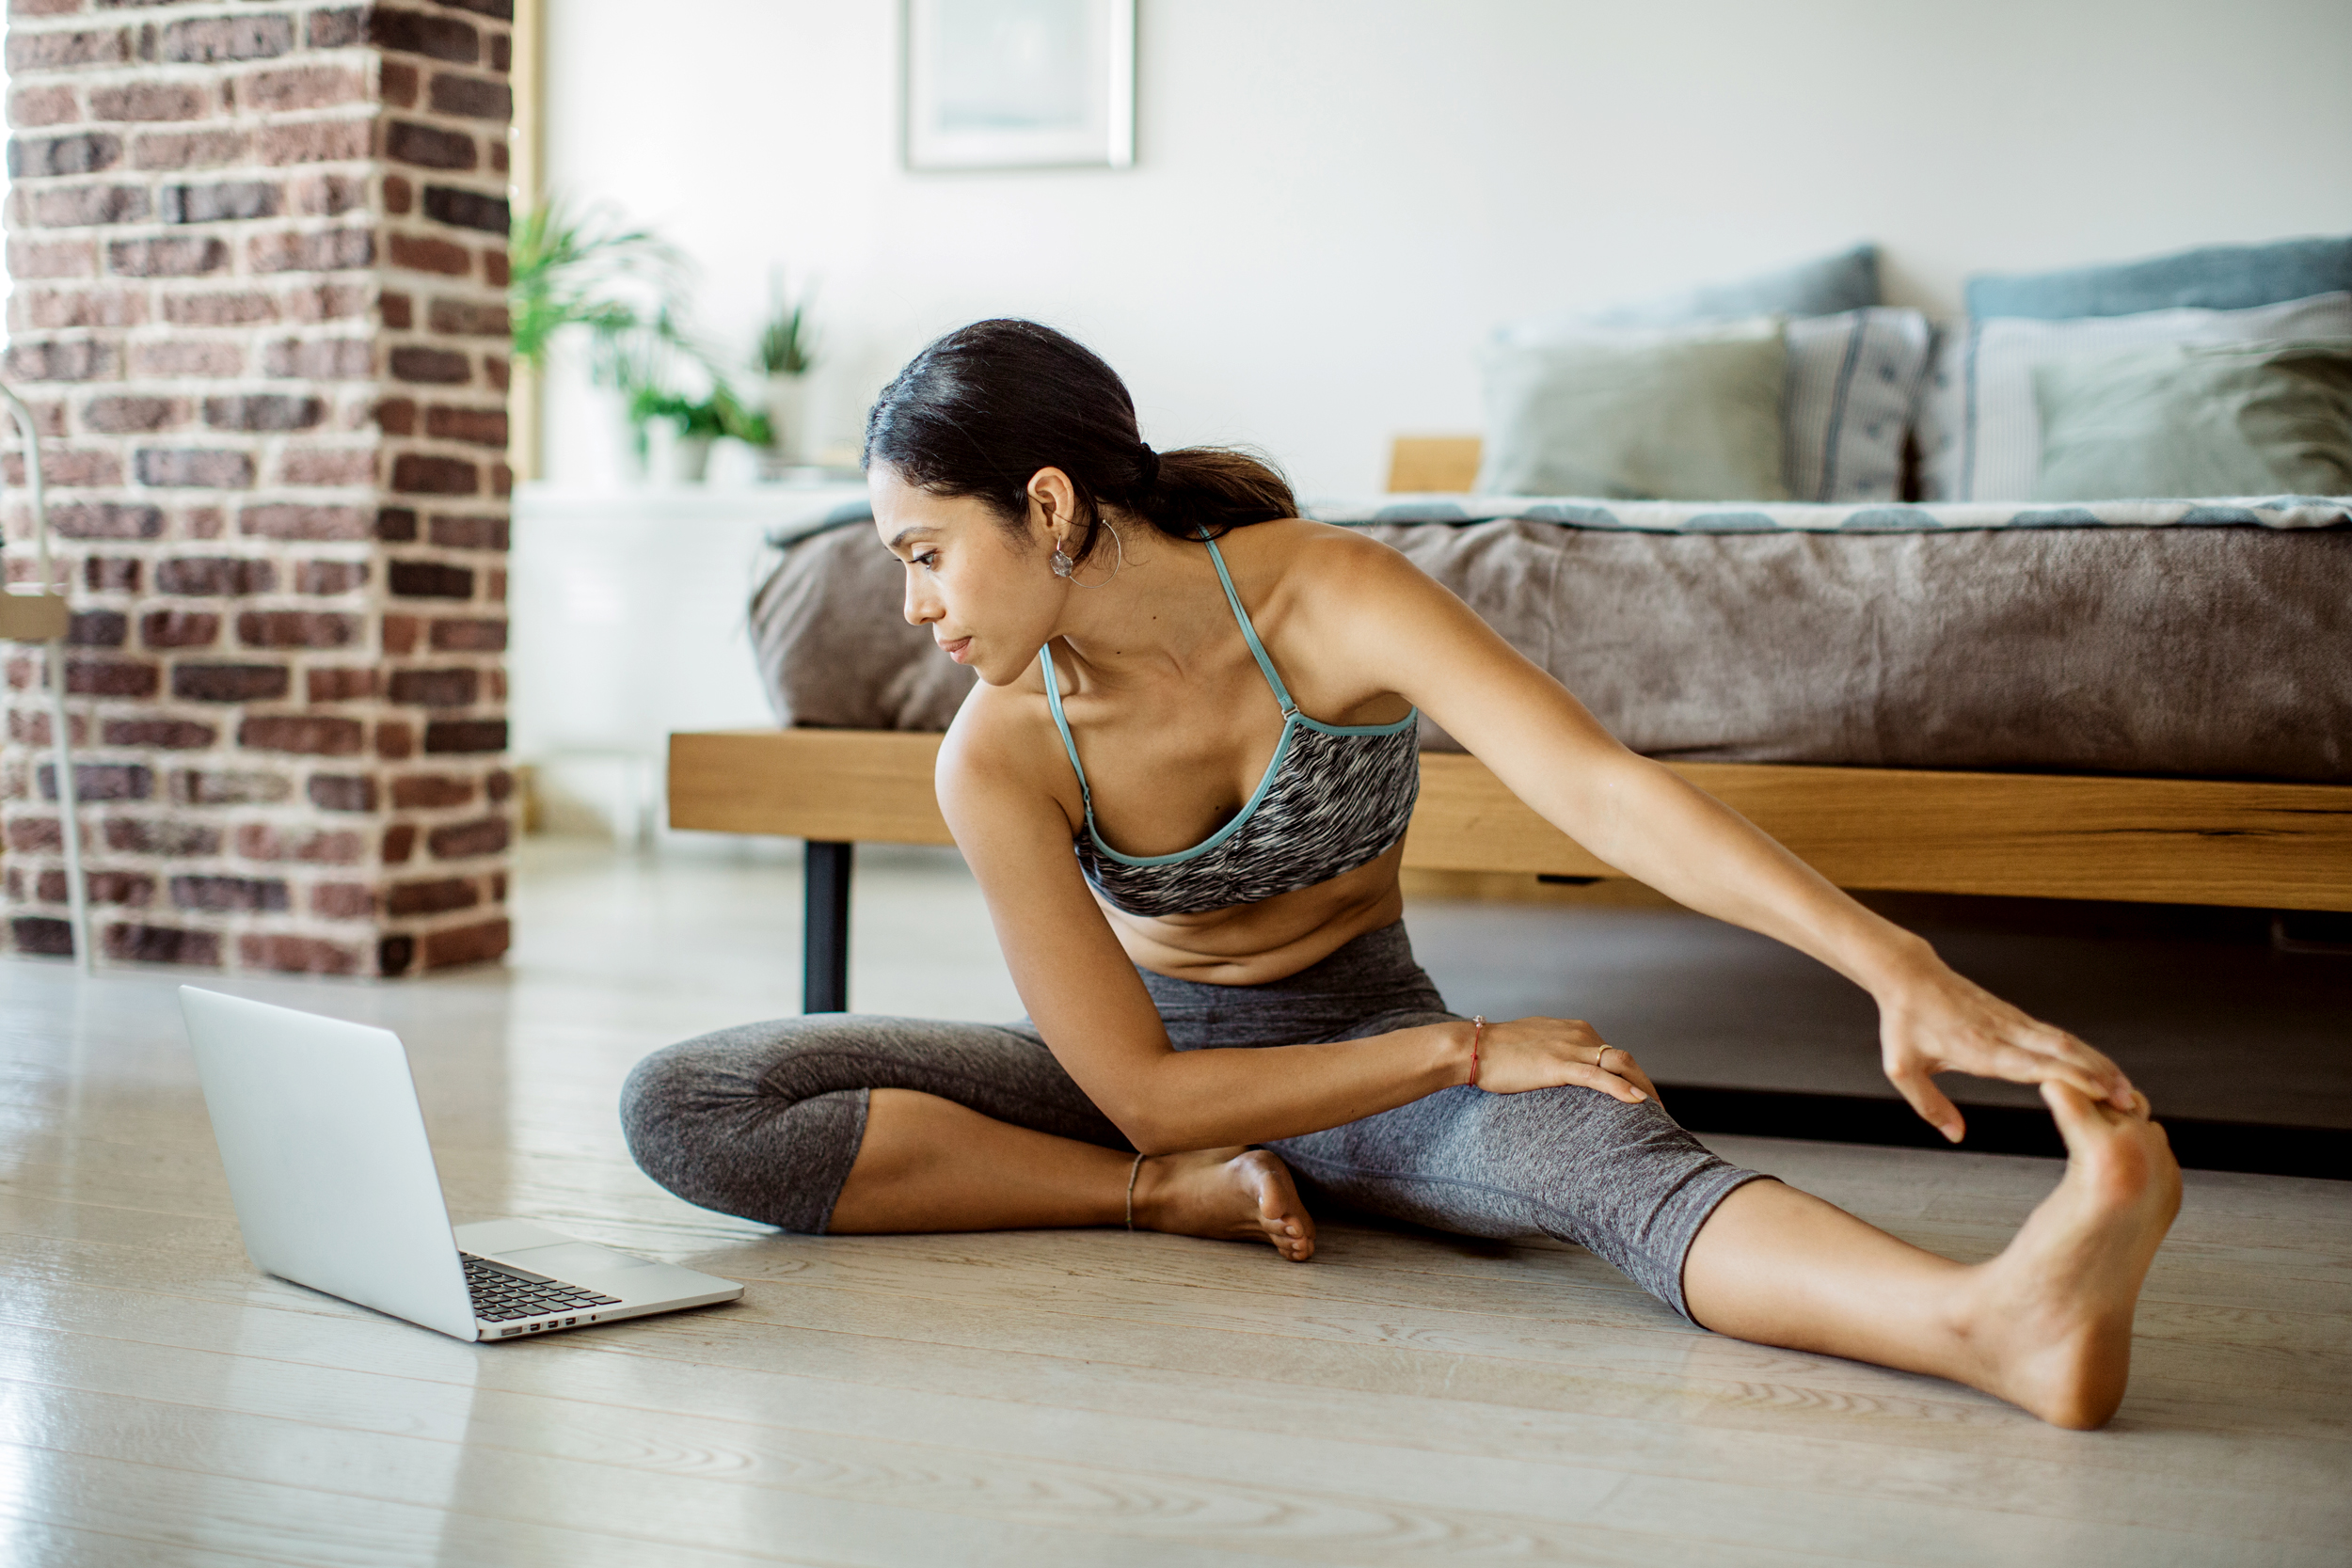 Gym Closed Here Are Some Free Or Discounted Workouts To Do At Home